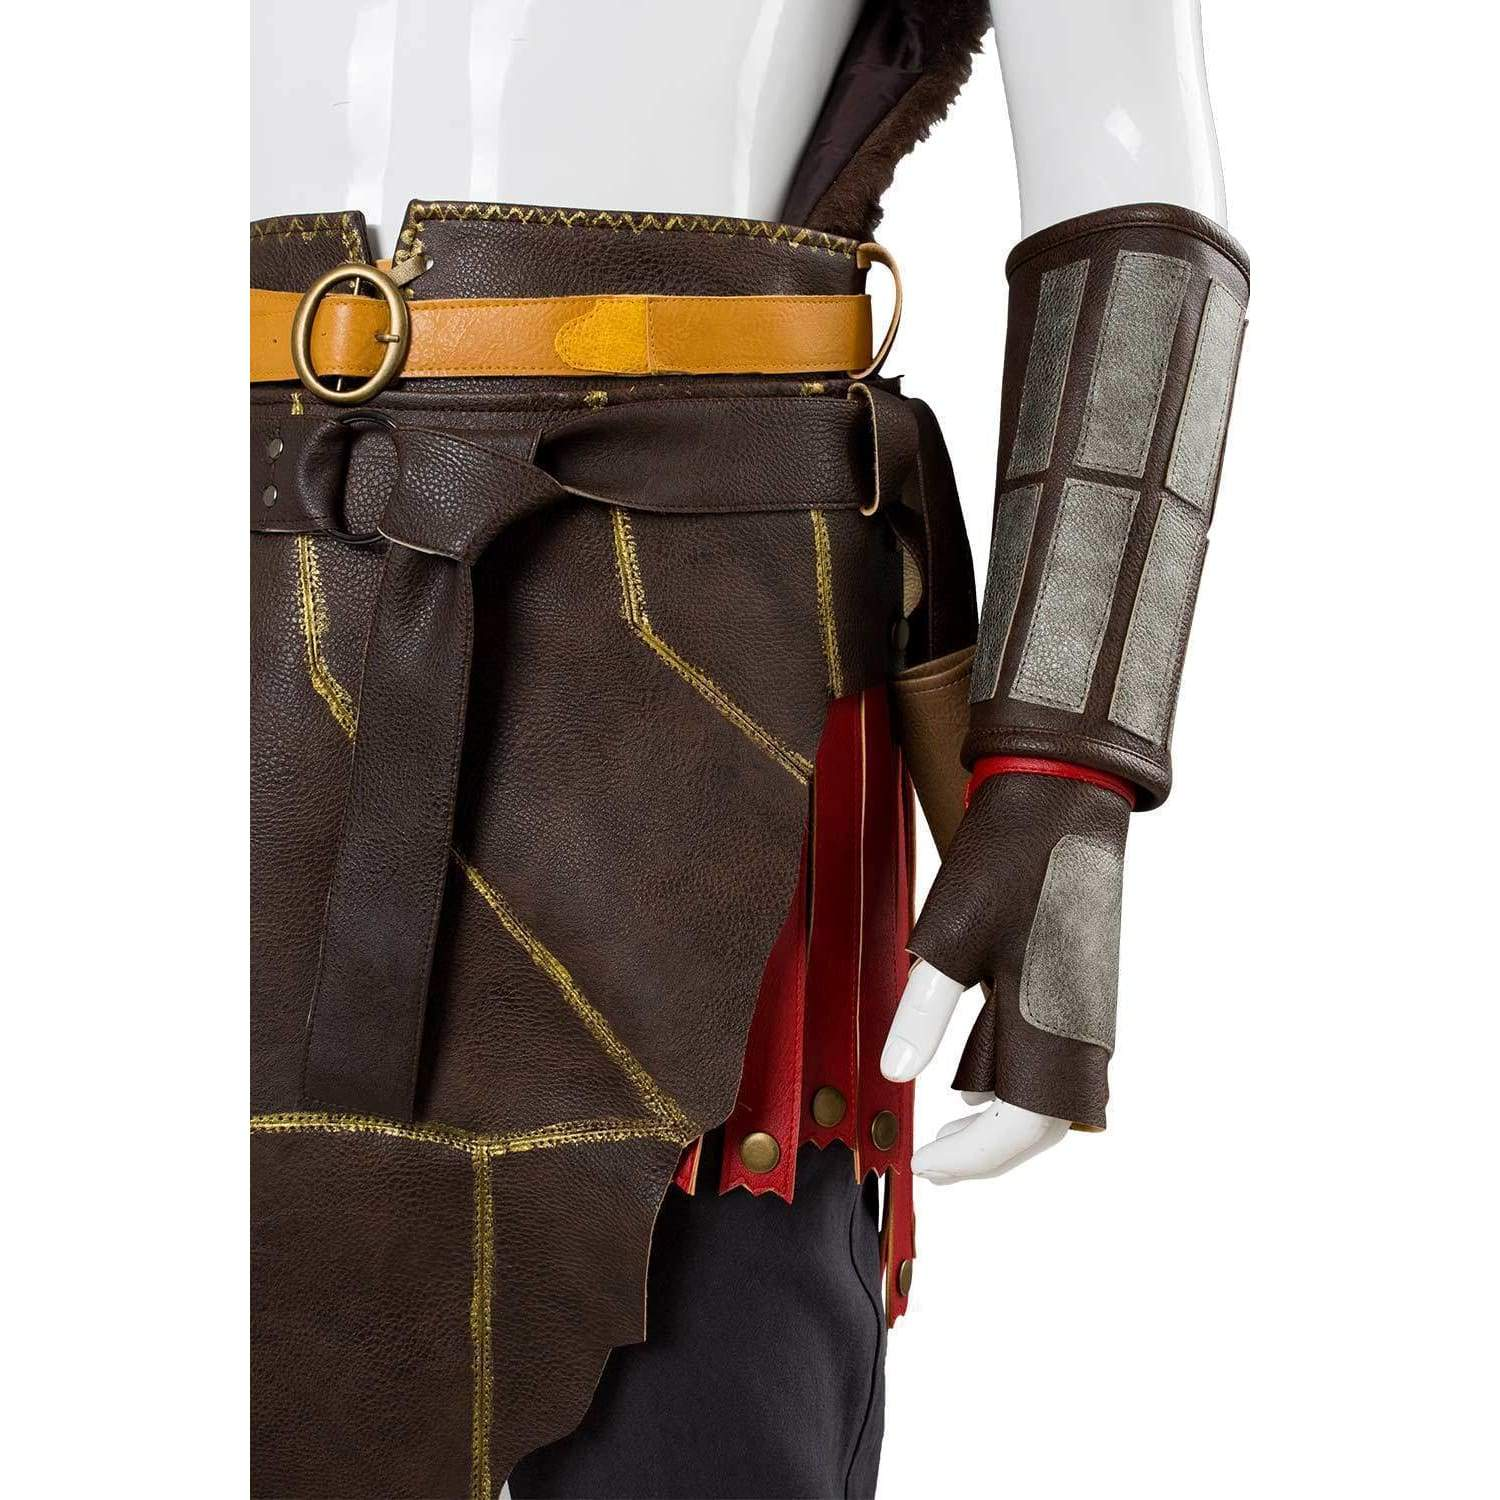 God of War 4 Kratos Nordic Armor Spartan Battle Suit Costume Cosplay Outfit:as v